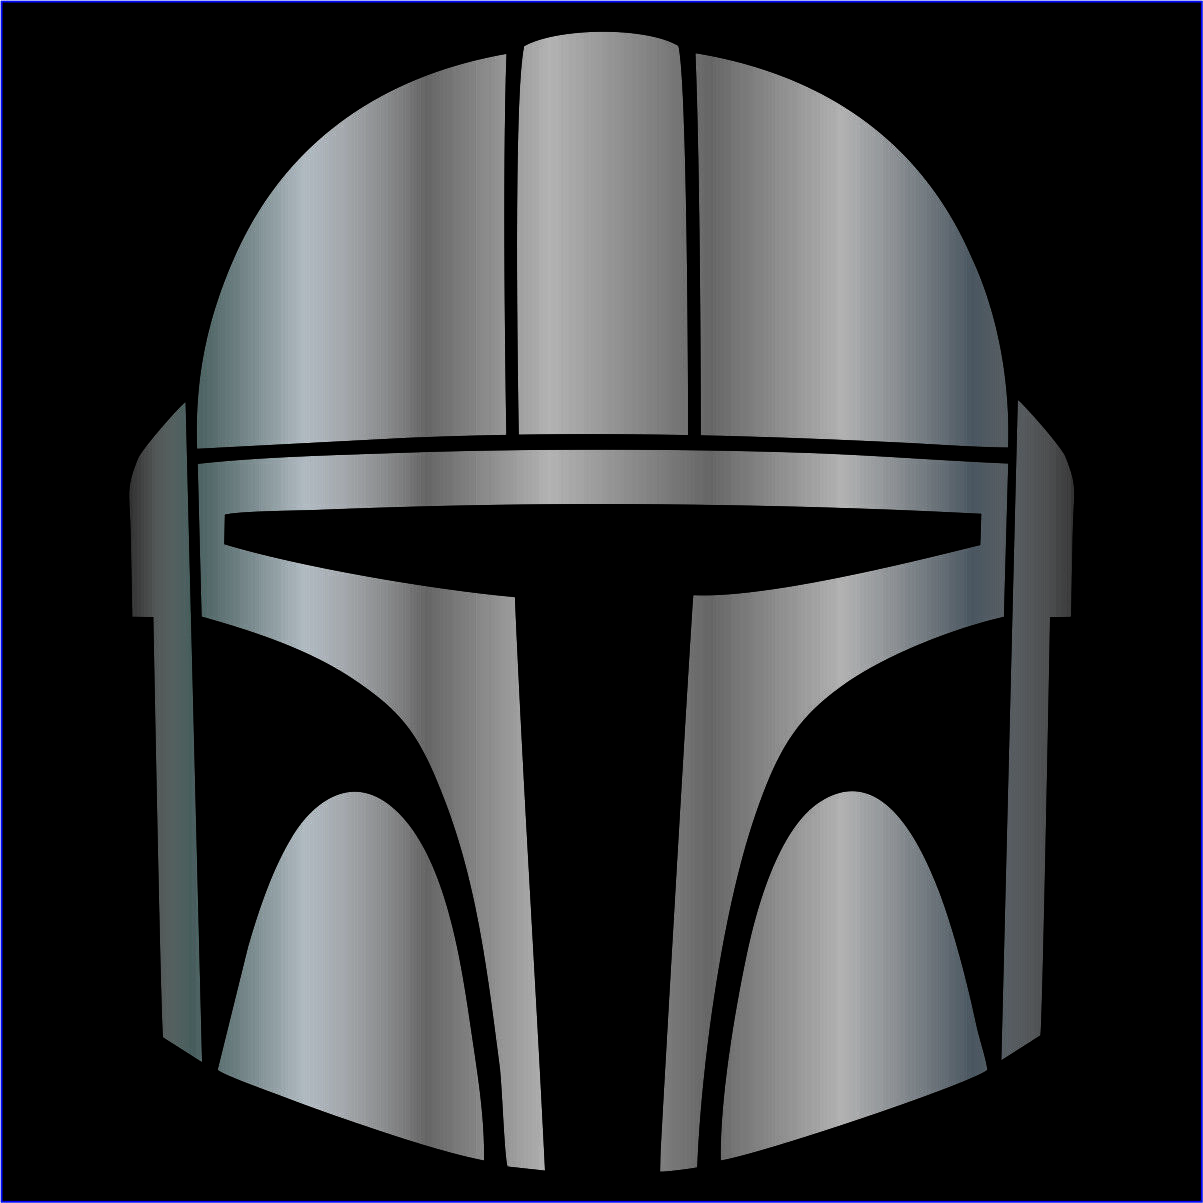 Home Decoration - The Mandalorian Decal / Sticker - Choose Color & Size - Star Wars, Baby Yoda